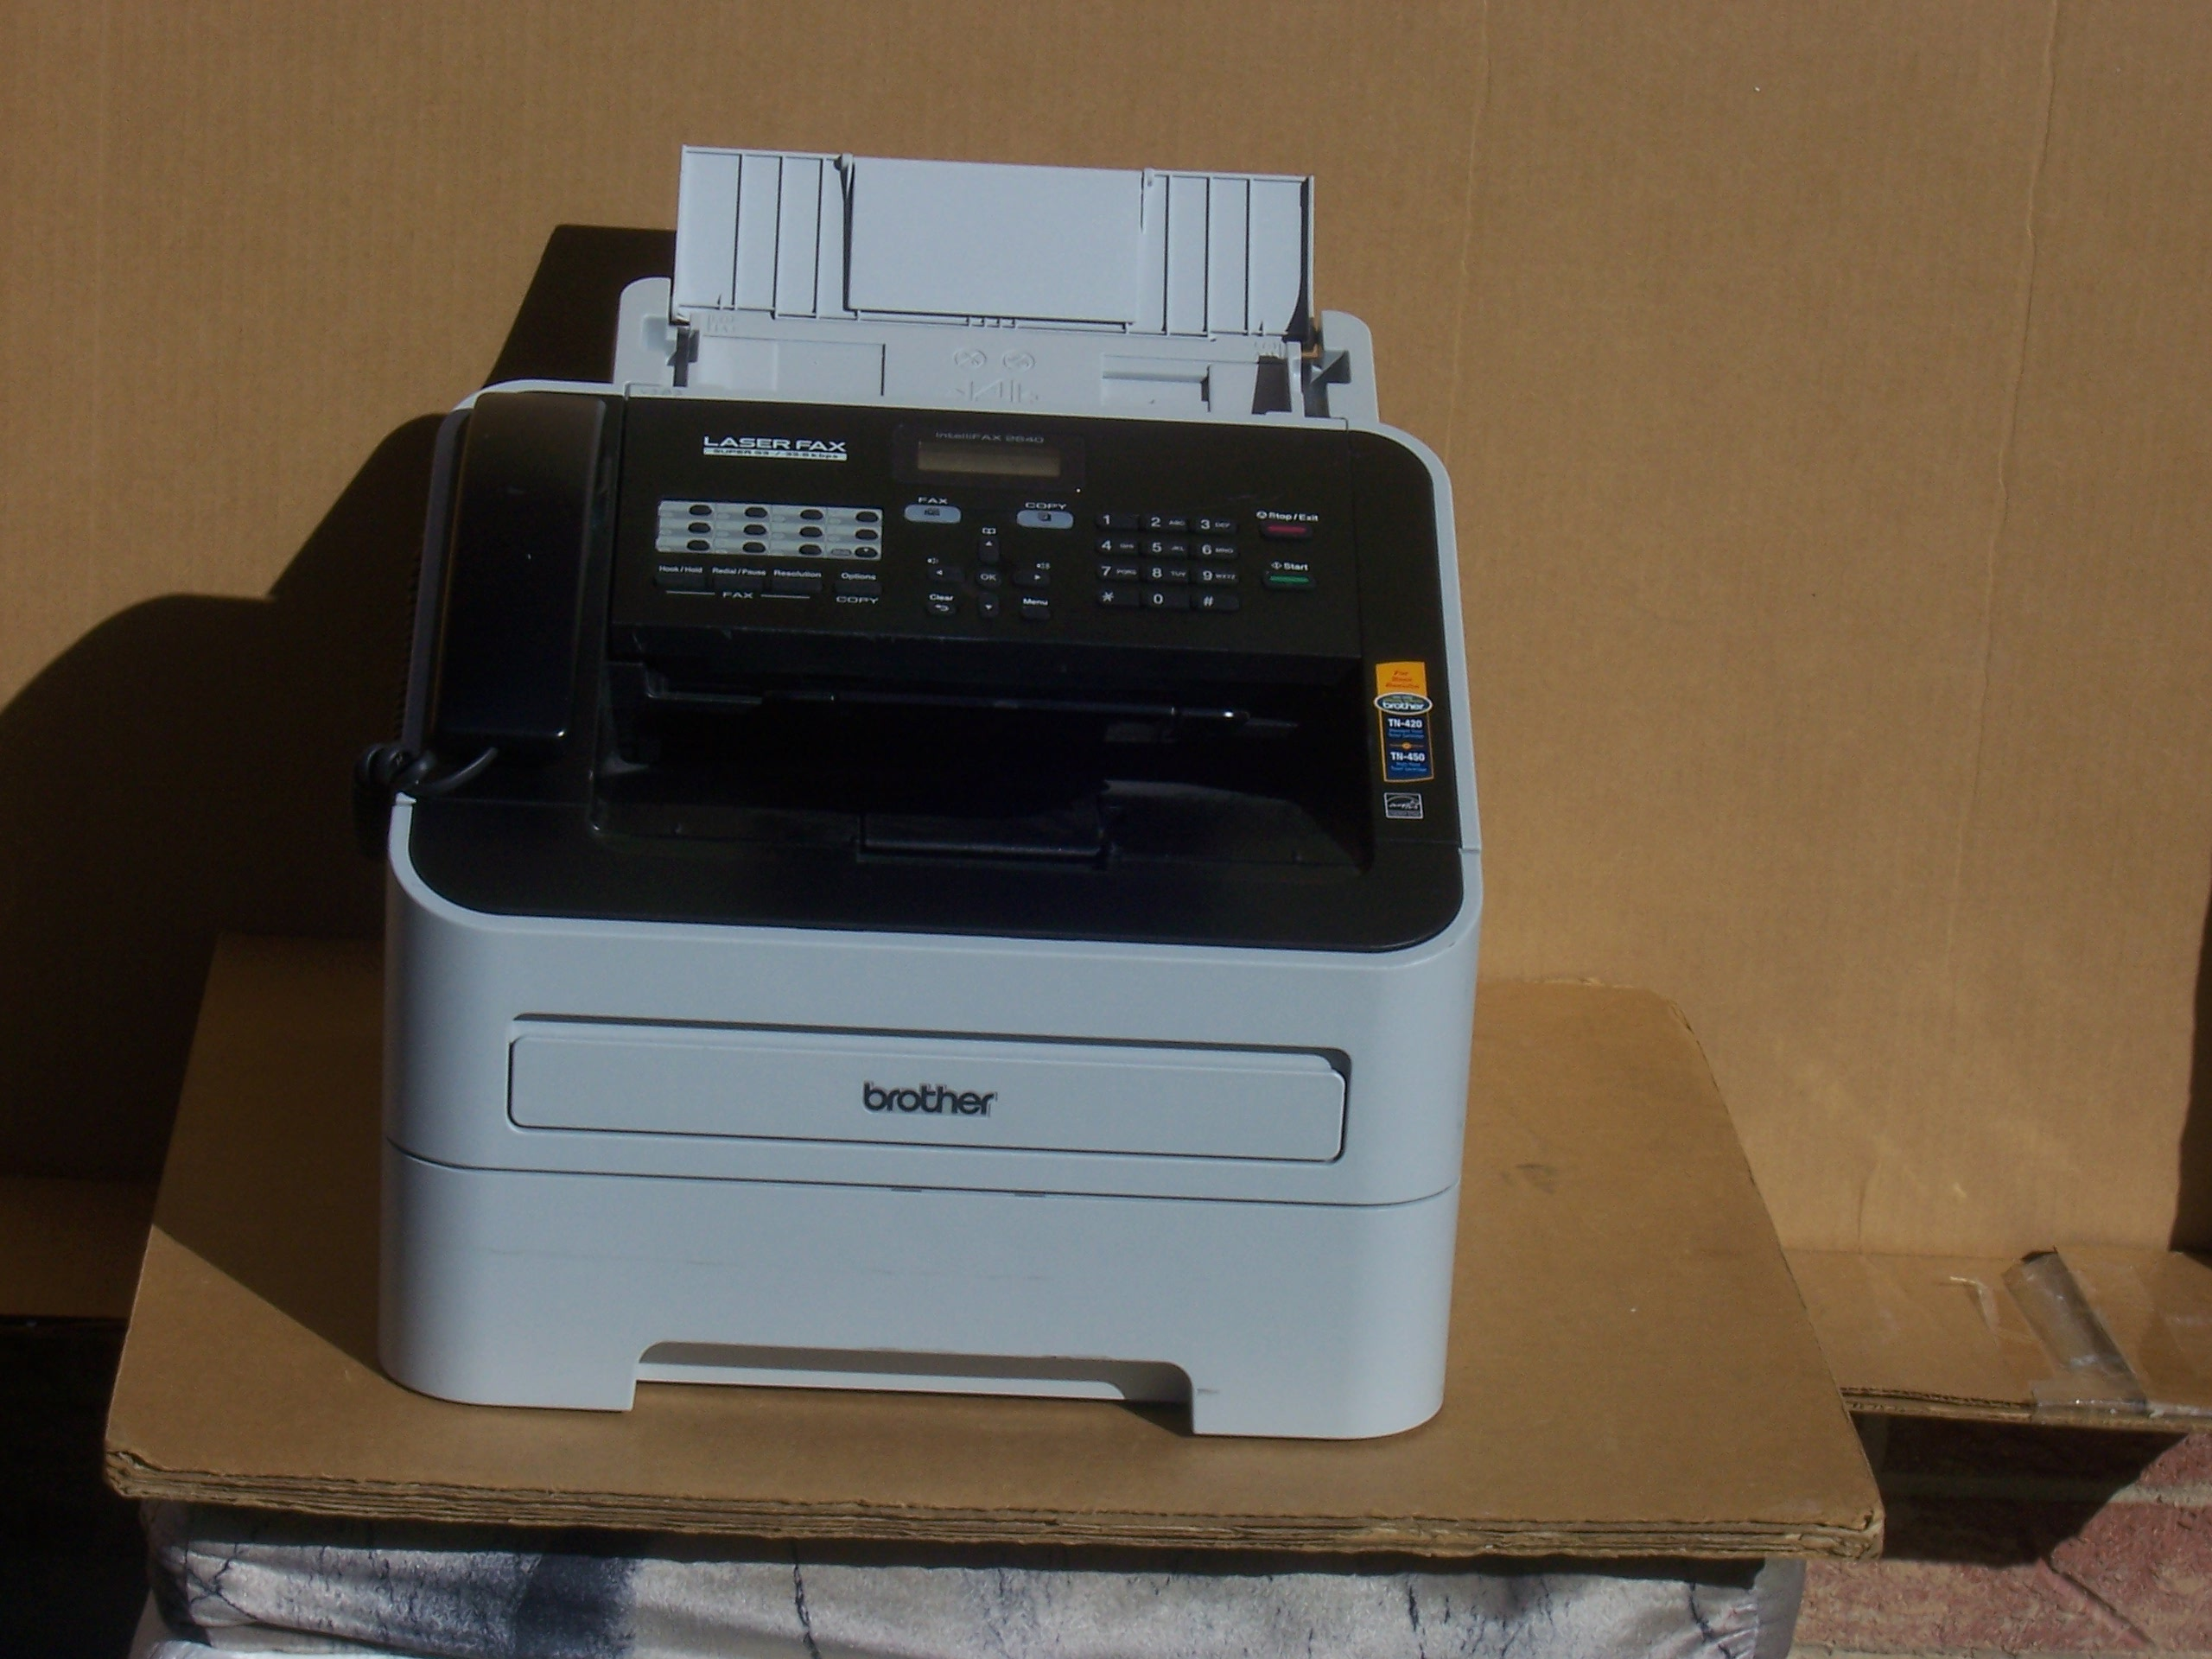 Brother laser fax super g3 user manual